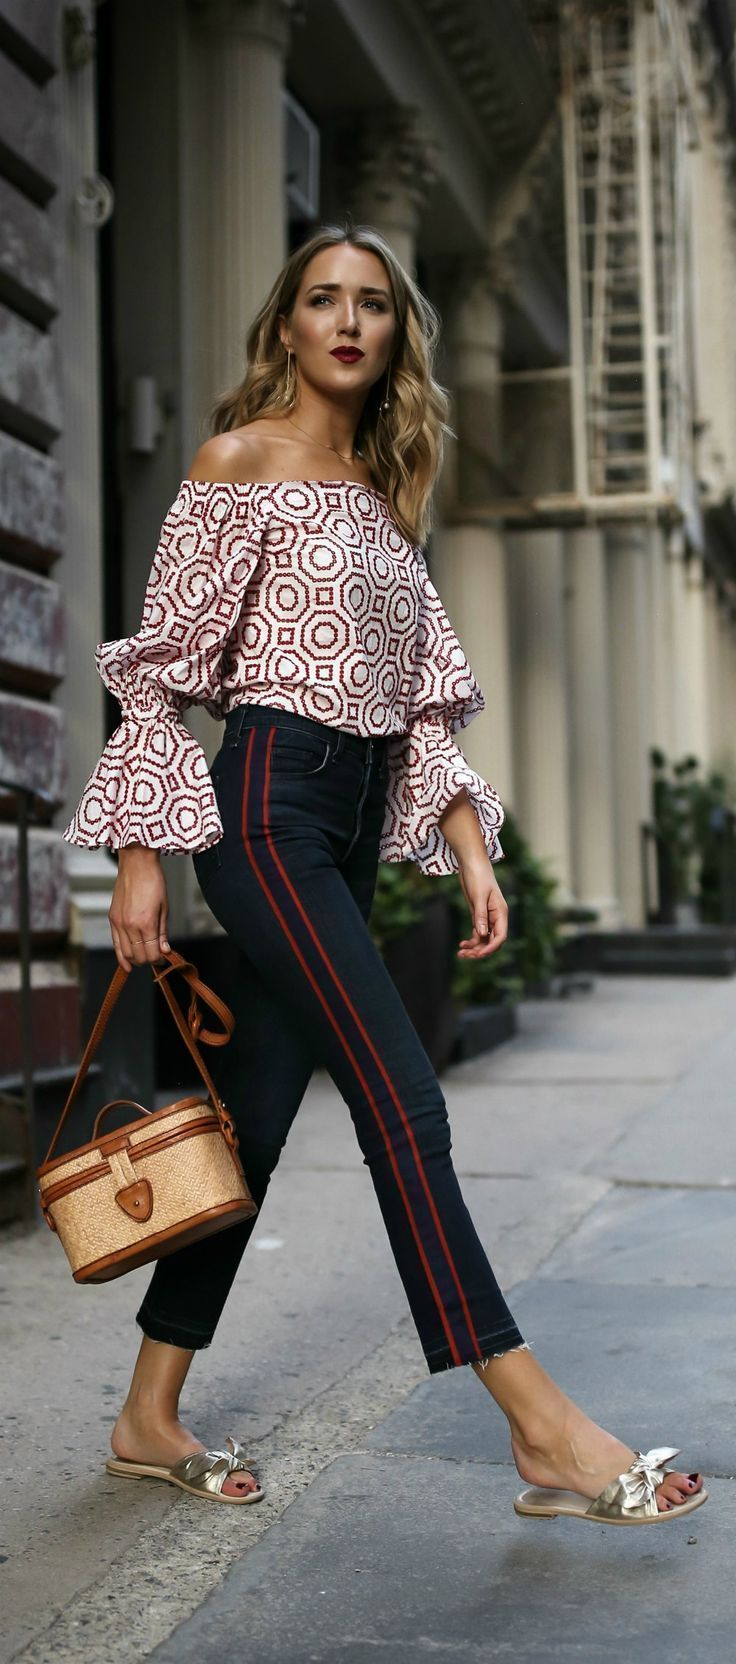 Three New Denim Brands You Need to Know // Eyelet top, tux stripe jeans, box bag, gold bow sandals { Veronica Beard, Rebecca Taylor, Everlane, Alexis, weekend wear}